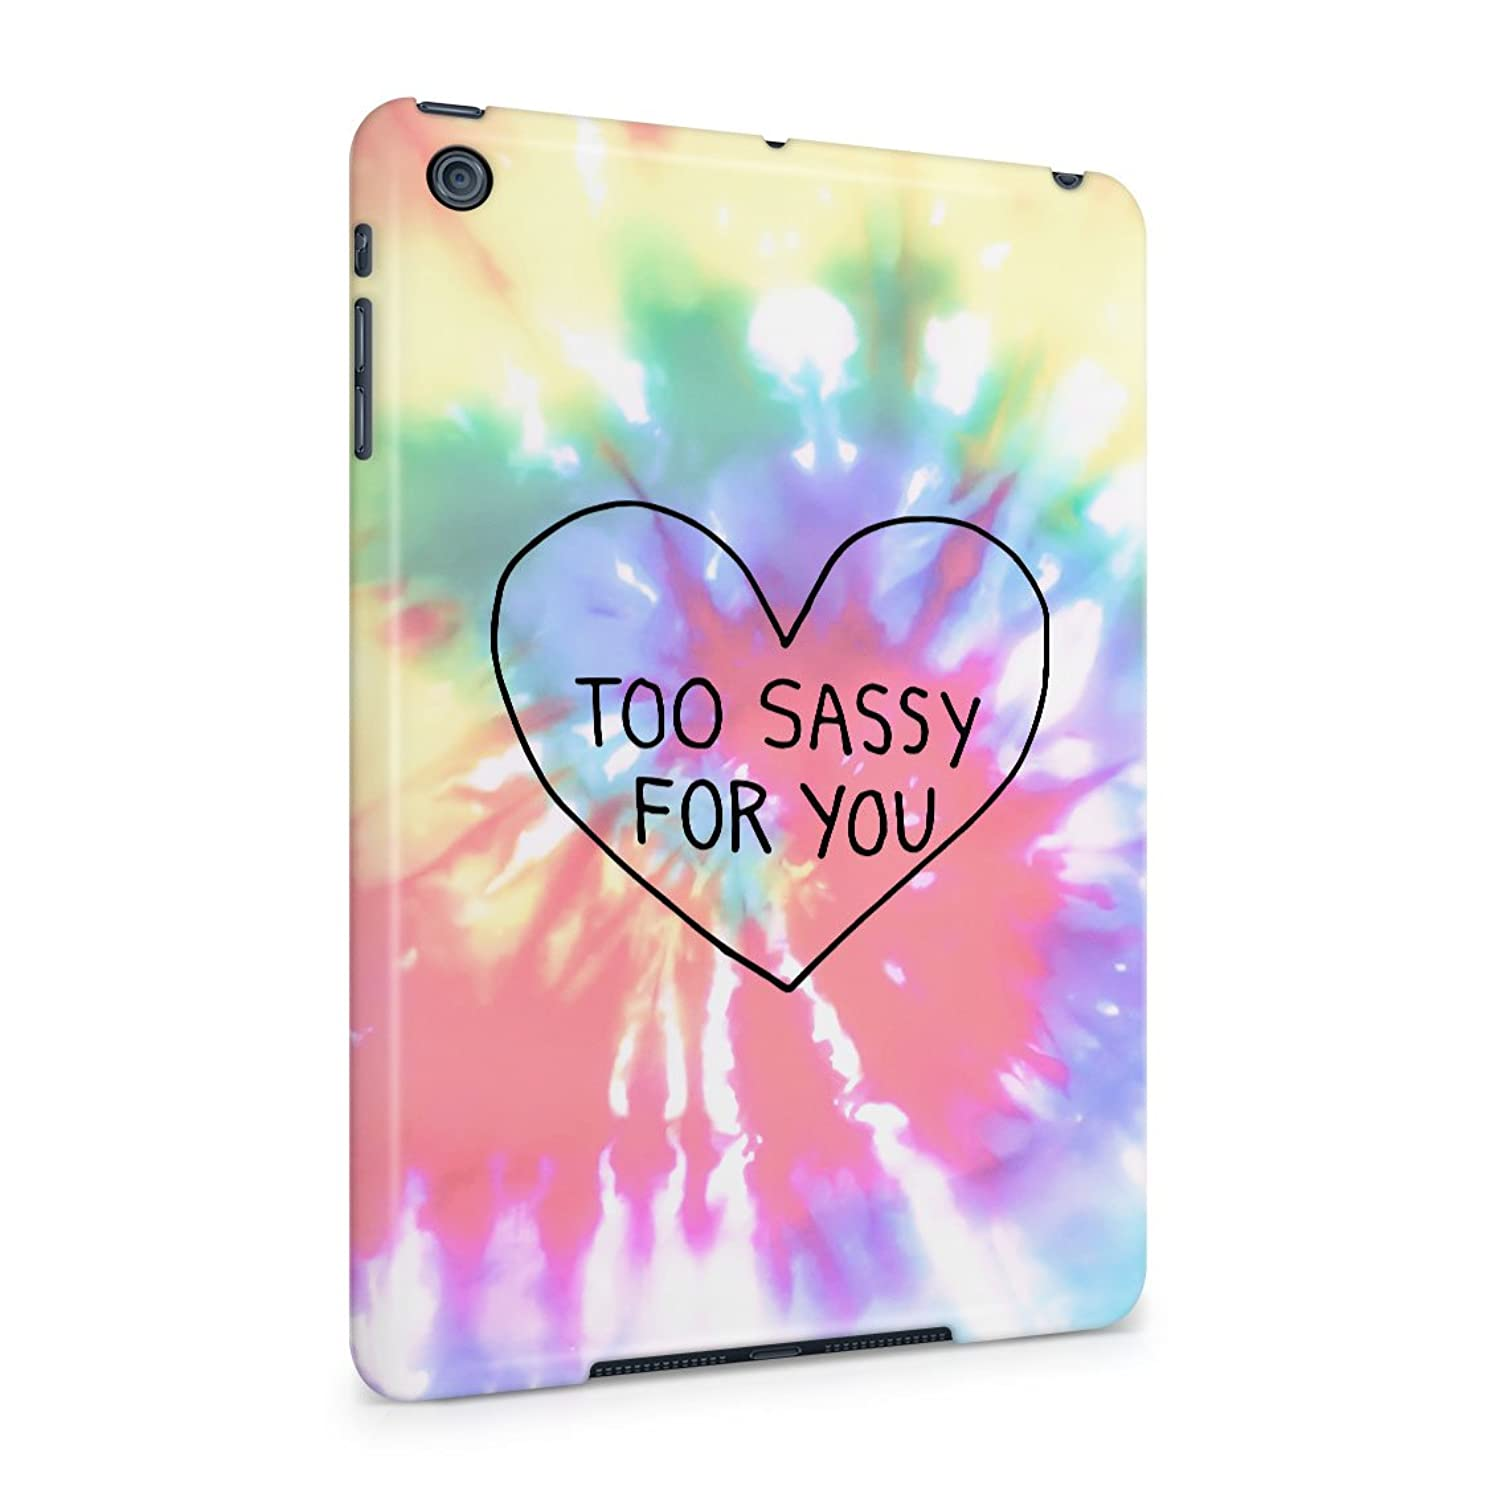 Too Sassy For You Heart Trippy Tie Dye Plastic Tablet Snap On Back Cover Shell For iPad Mini